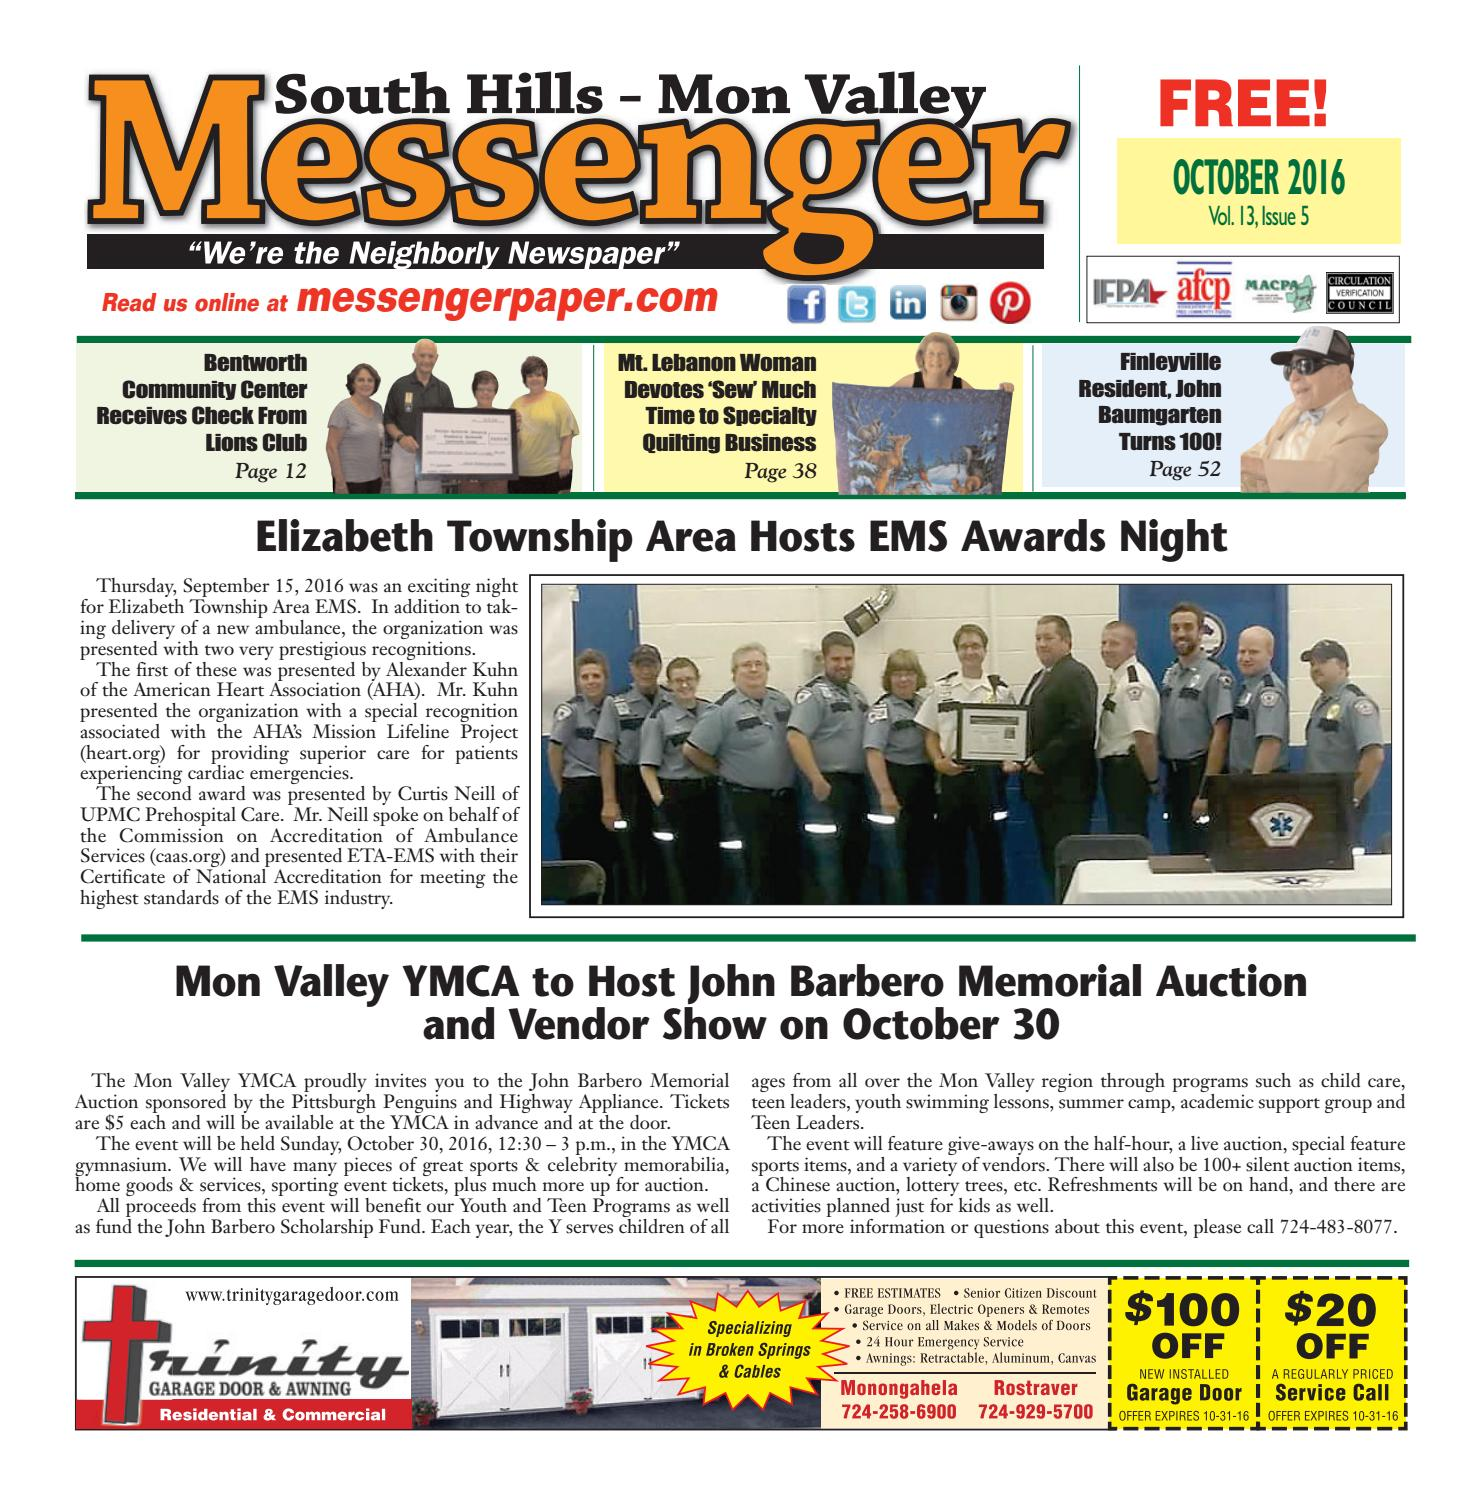 South hills mon valley messenger october 2016 by south hills mon south hills mon valley messenger october 2016 by south hills mon valley messenger issuu fandeluxe Images